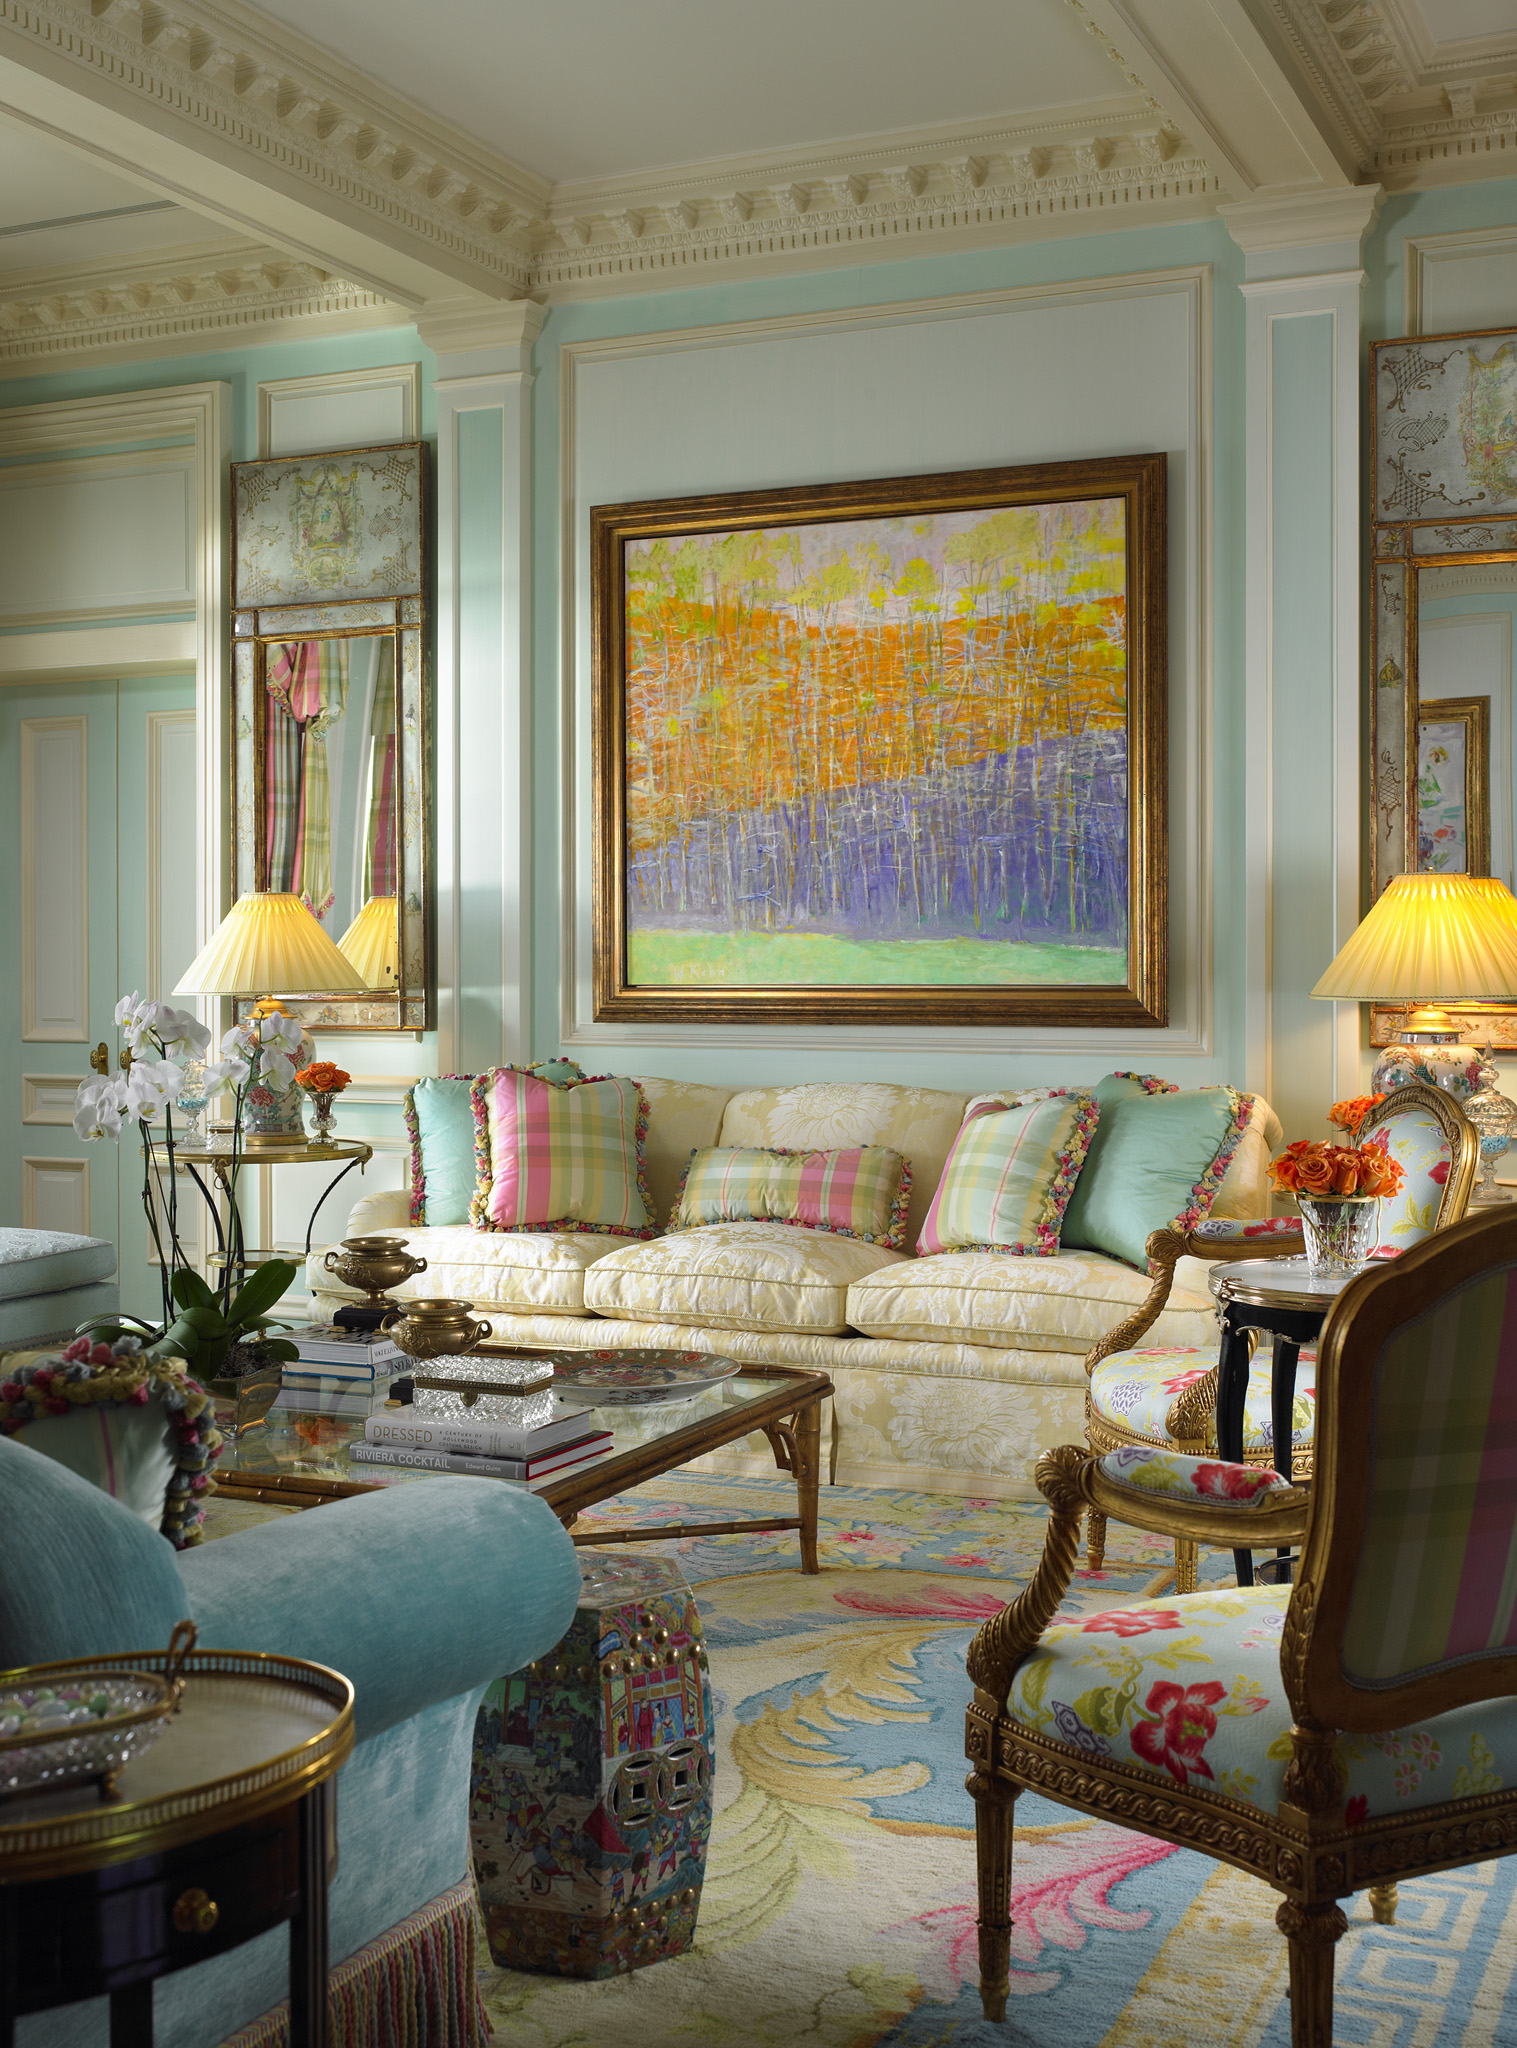 yellow and grey living room decorating ideas interior design 2016 scott snyder waterside palm beach fl home - interiors by color